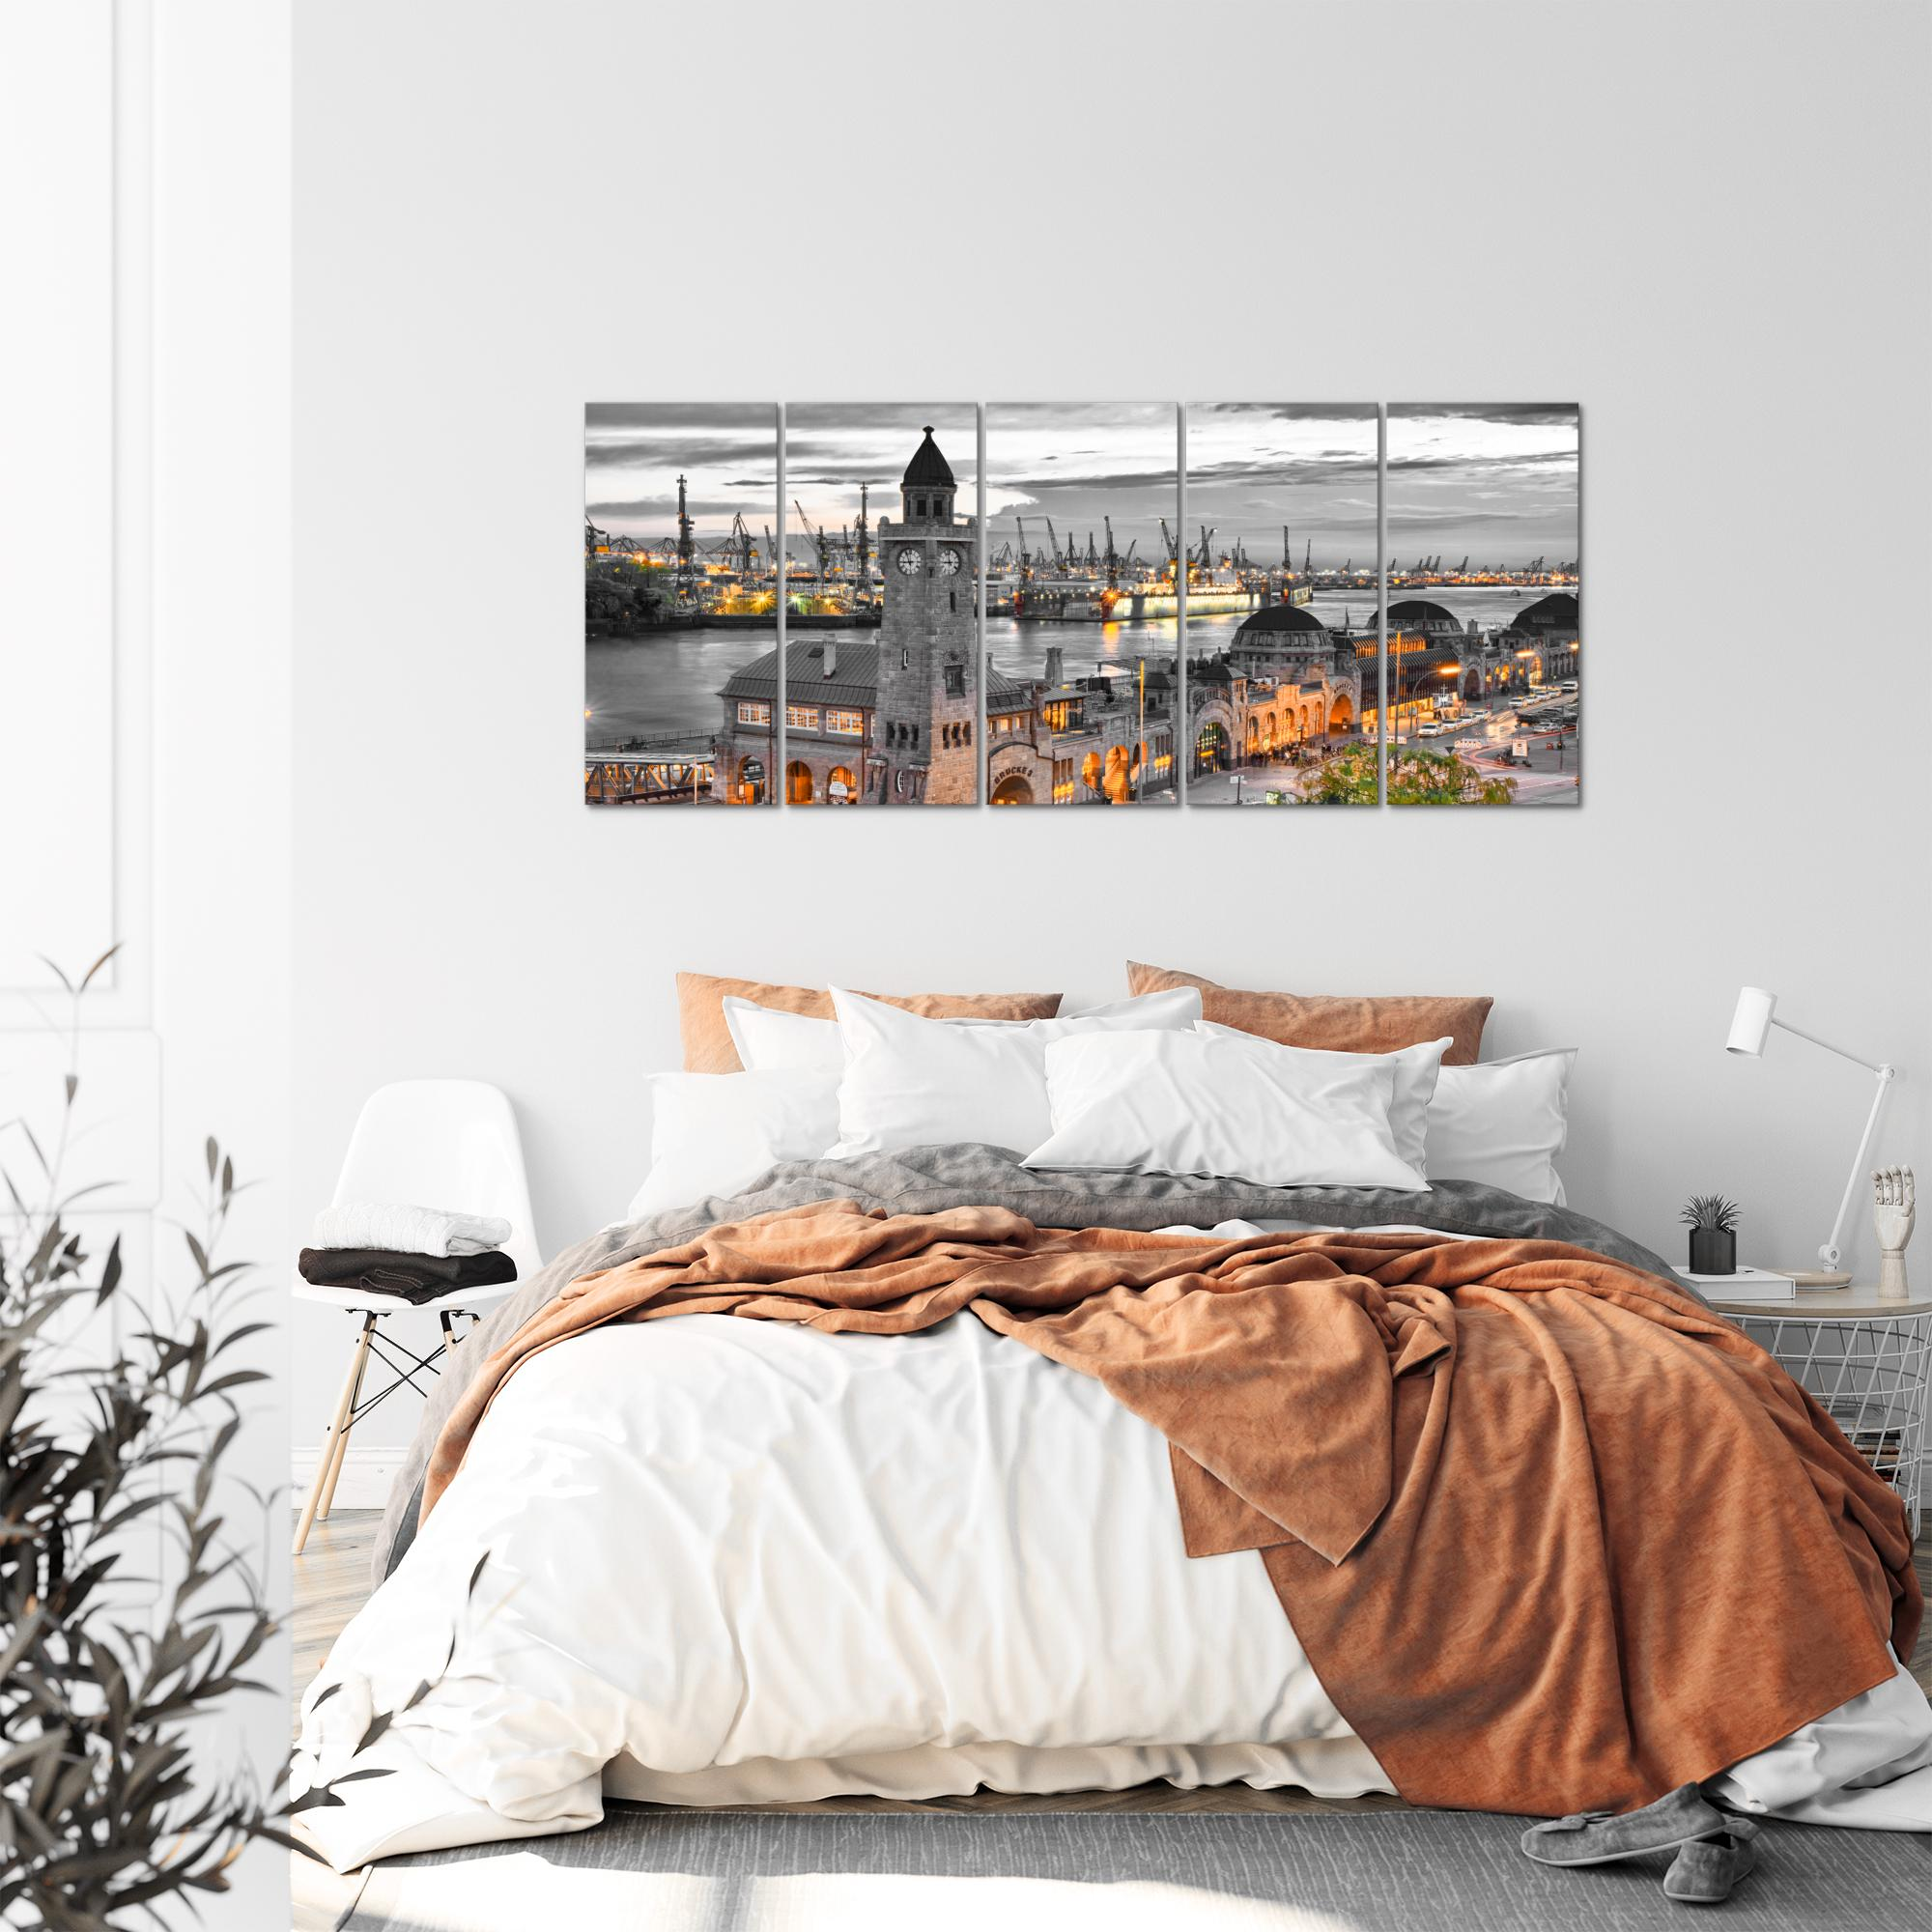 stadt hamburg bild kunstdruck auf vlies leinwand xxl dekoration 603055p. Black Bedroom Furniture Sets. Home Design Ideas